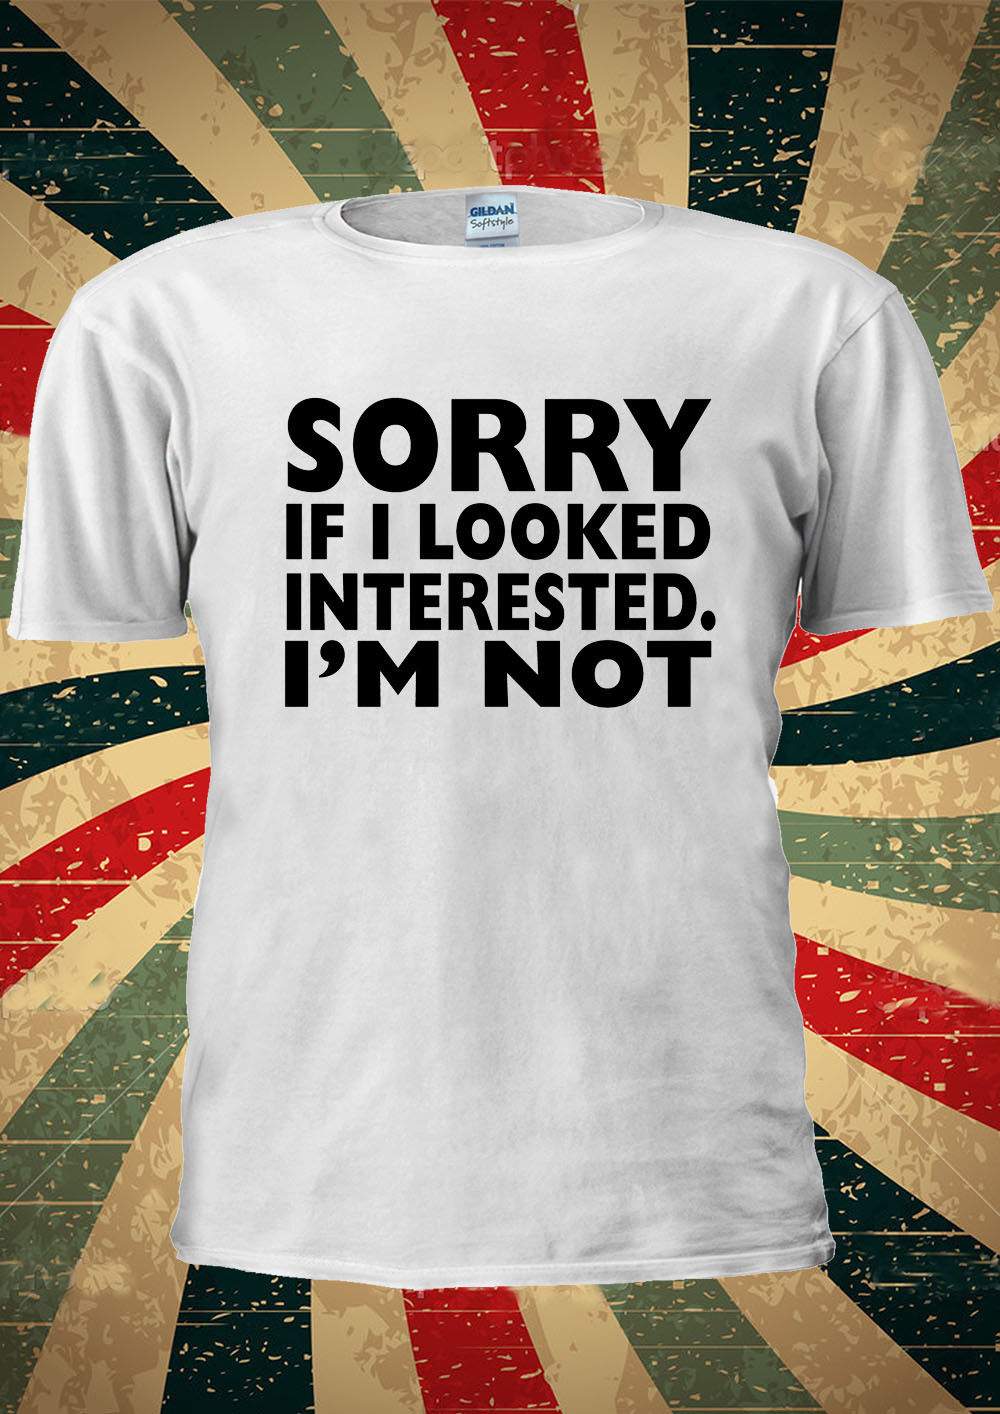 Sorry If I Looked Intrested I'm Not Tumblr Blog T Shirt Men Women Unisex 1356 image